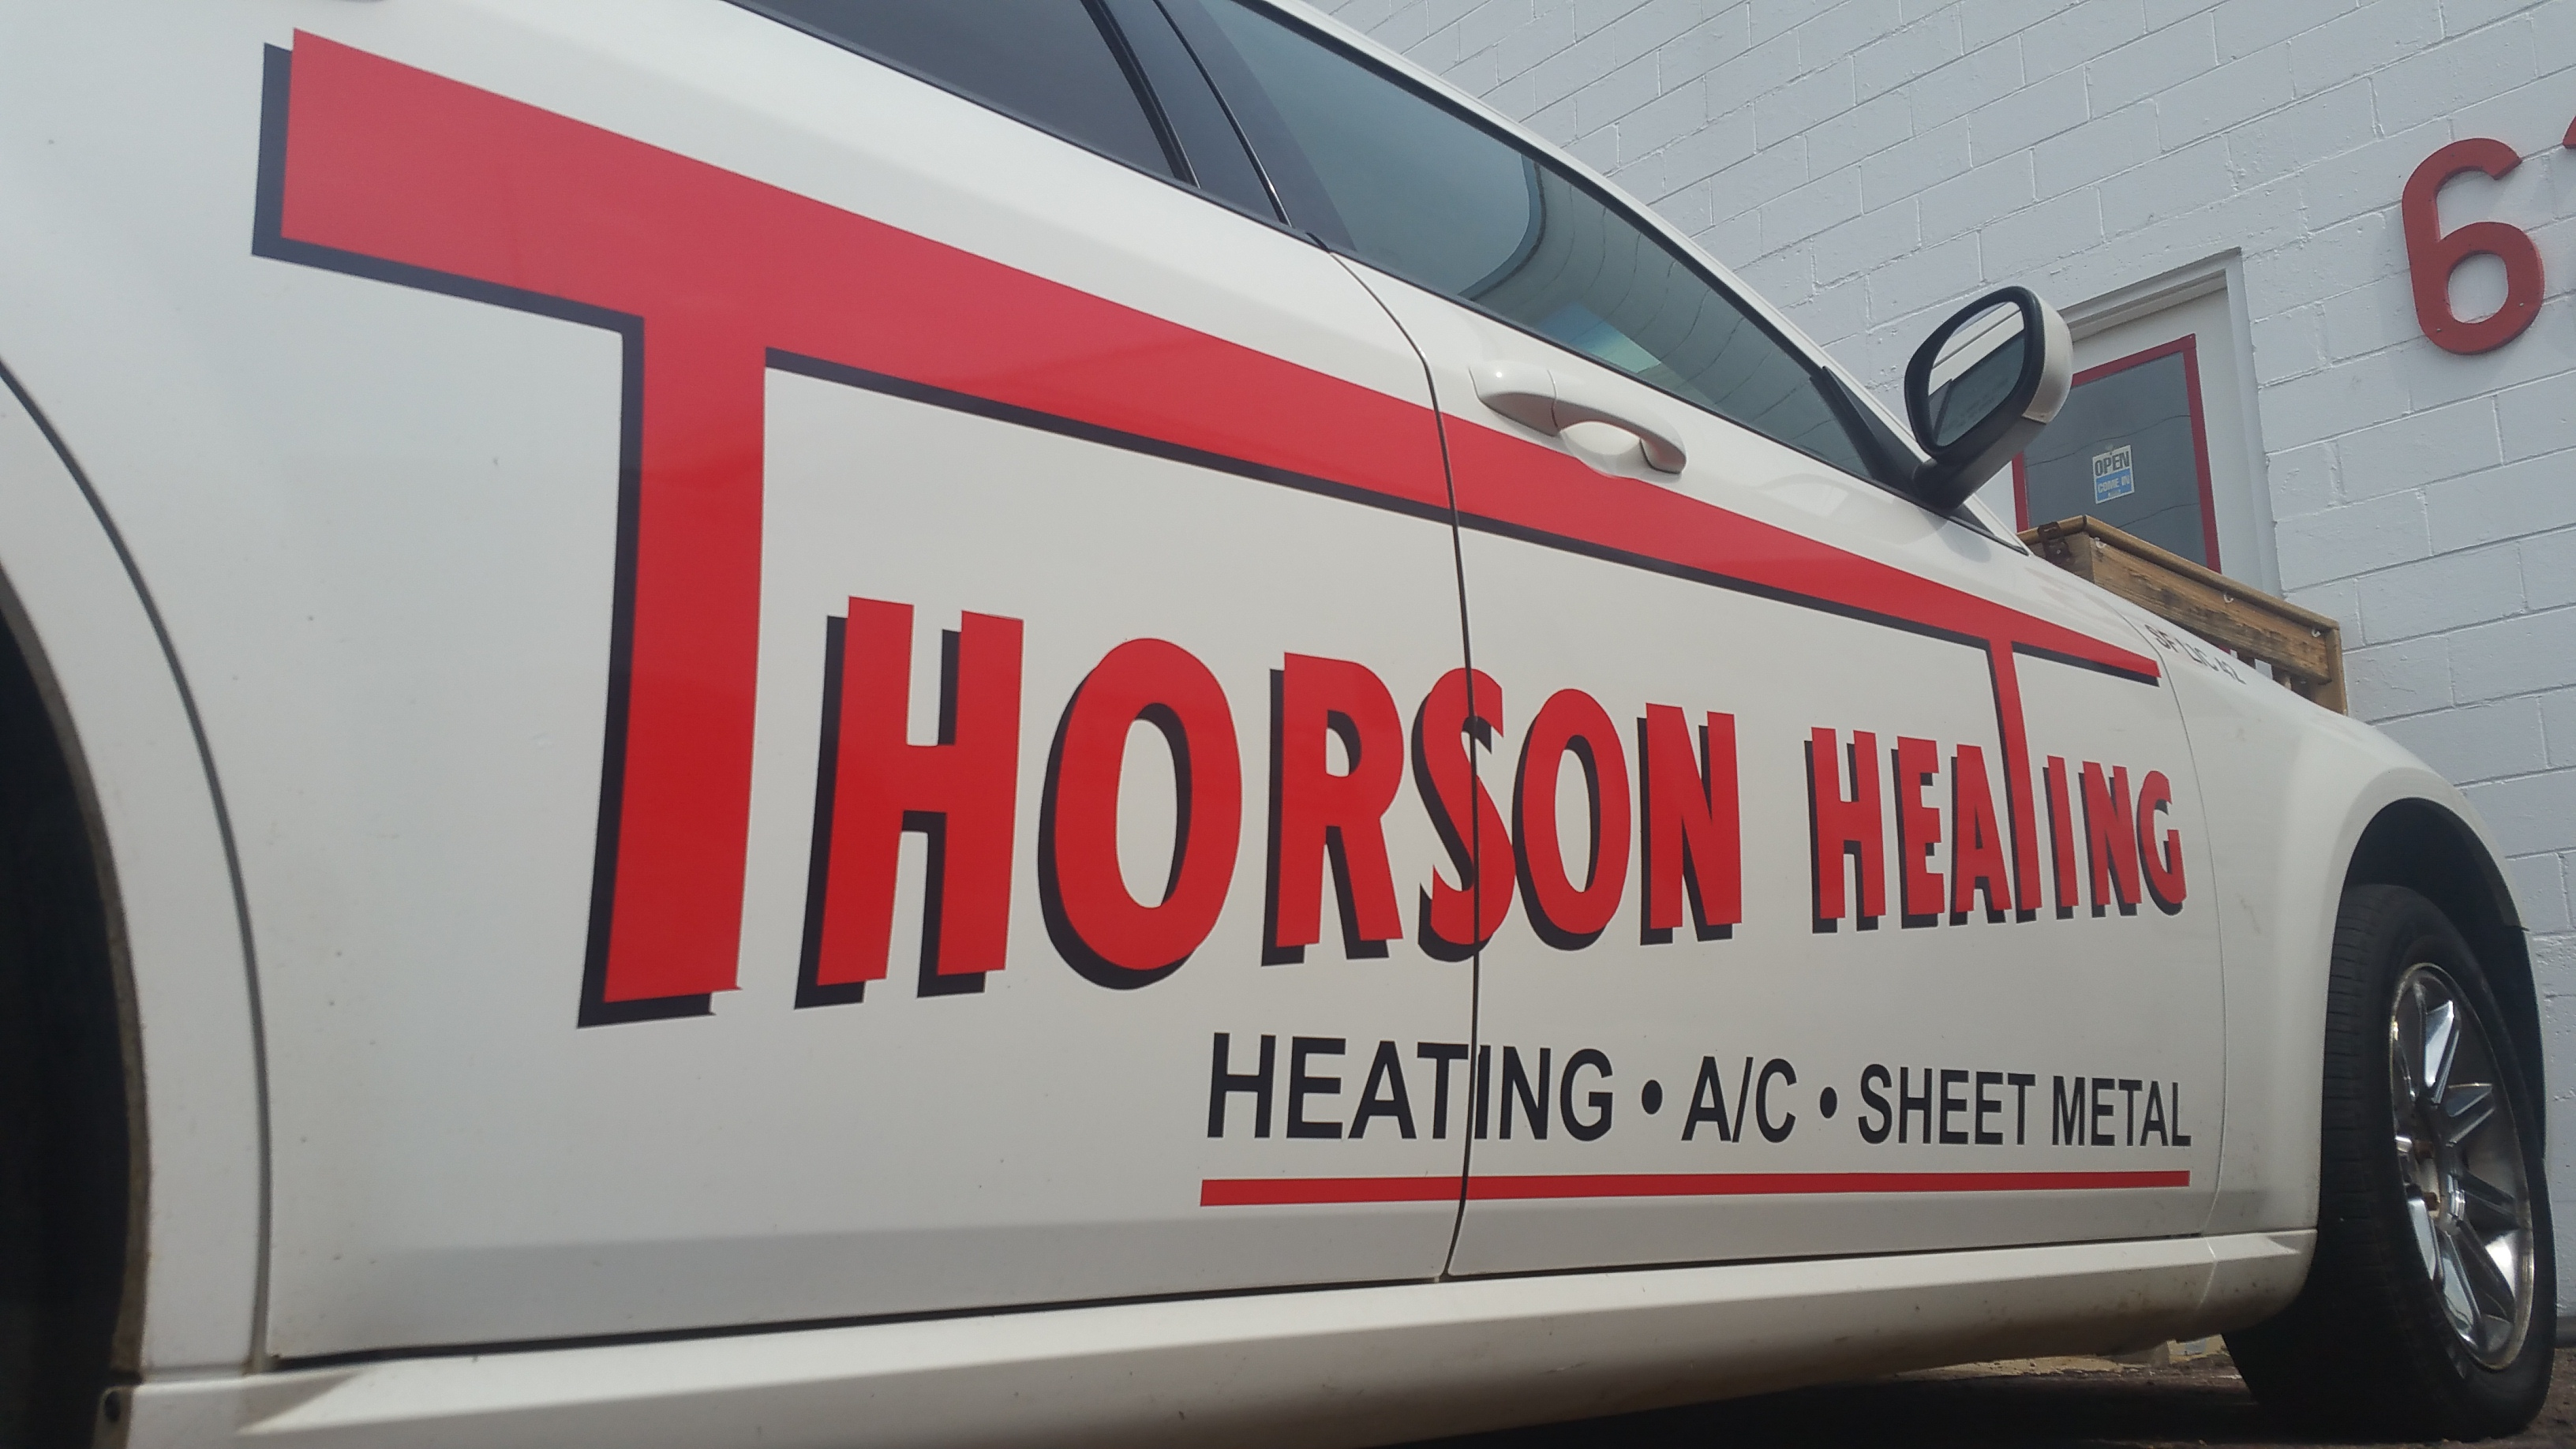 Thorson Heating & Air Conditioning image 2